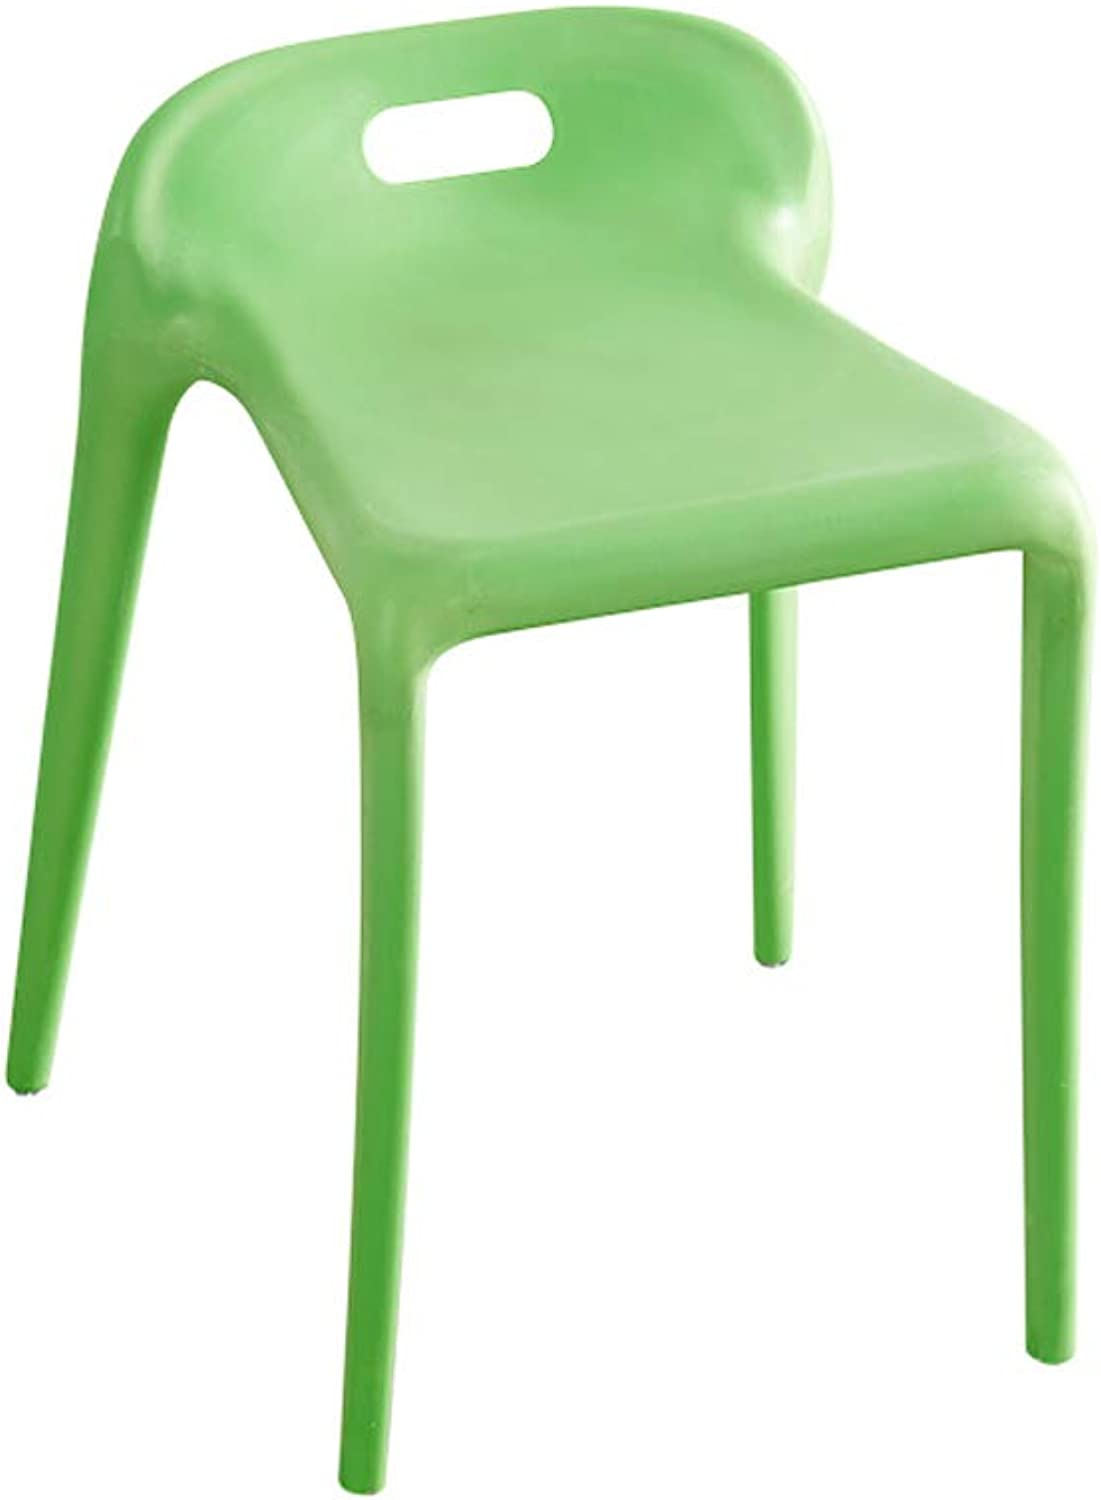 Plastic Dining Chair Living Room Home Bench, Simple Bar Stool Restaurant Table and Stool -L3132H45-56CM (color   Green)